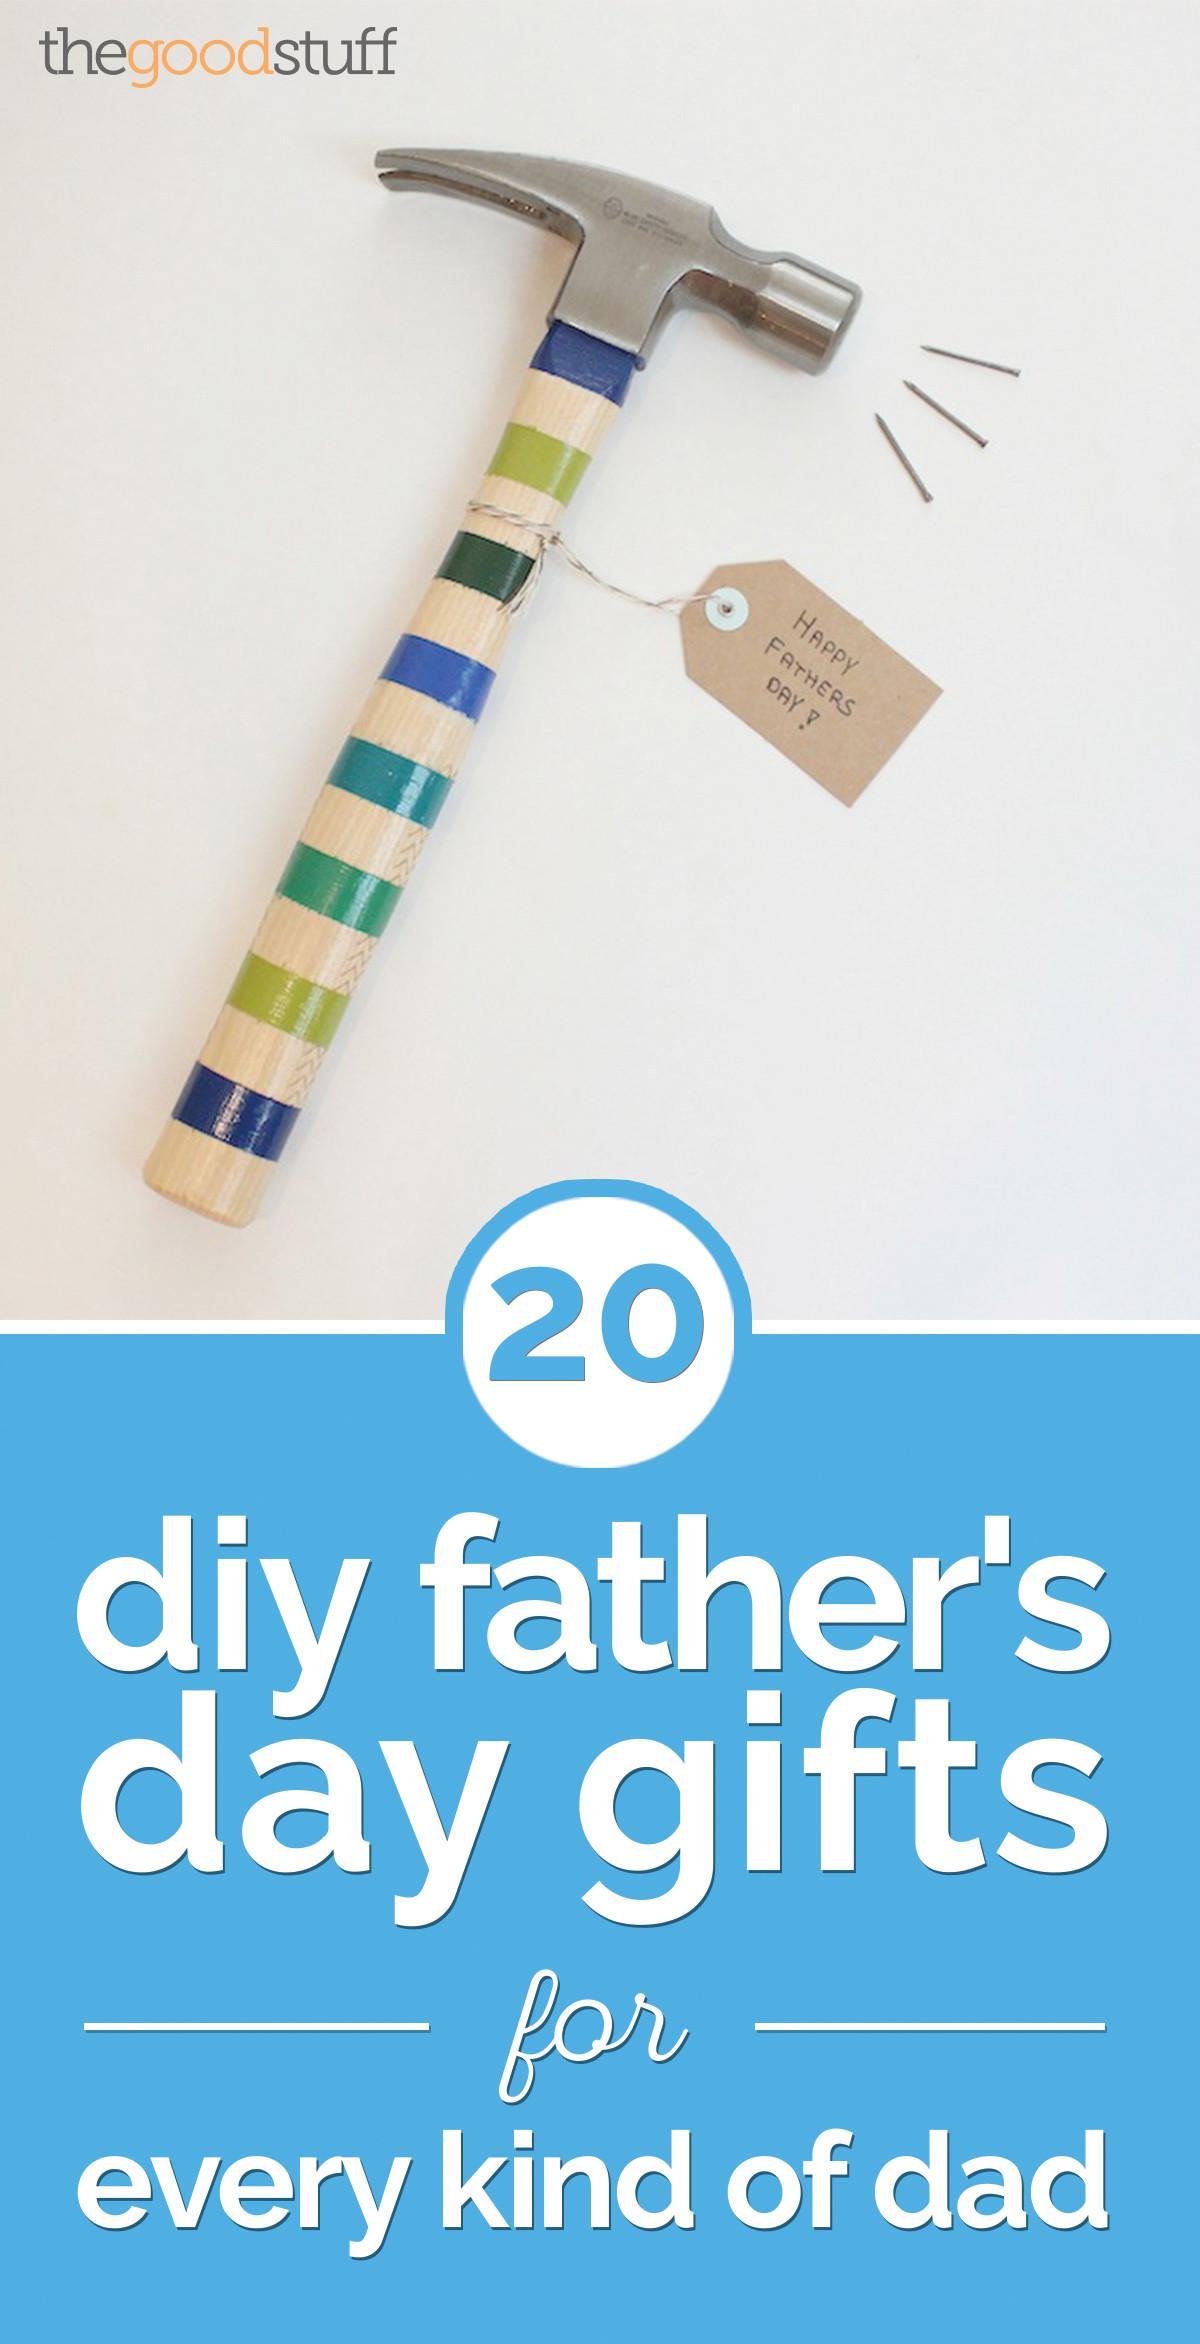 Diy Father Day Gifts Every Kind Dad Thegoodstuff